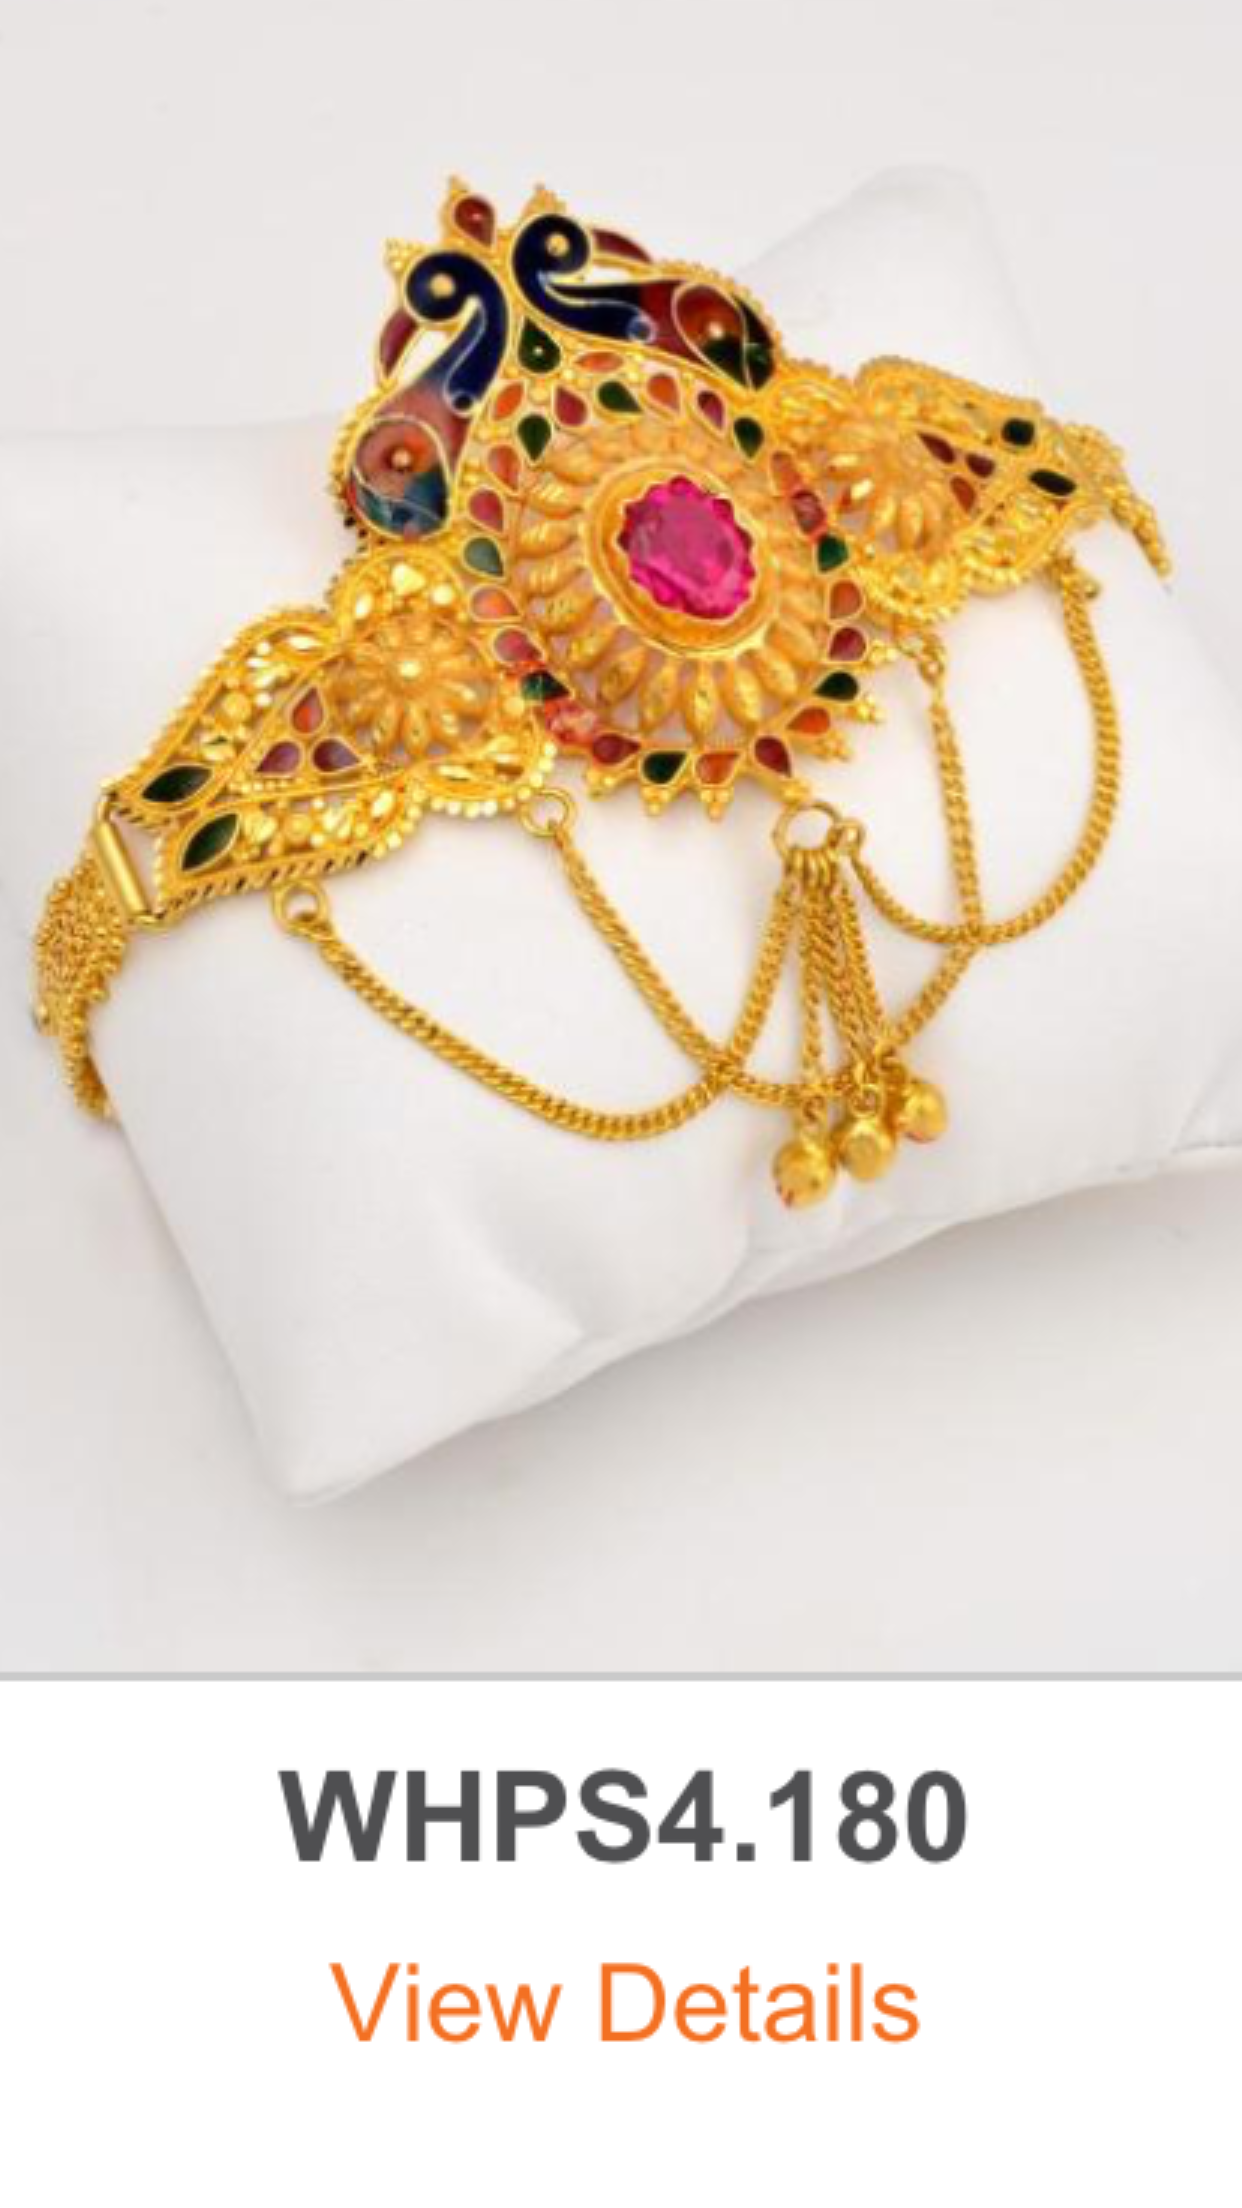 Gold Bajuband/Armlet, So attractive & my stress reliever that I am.